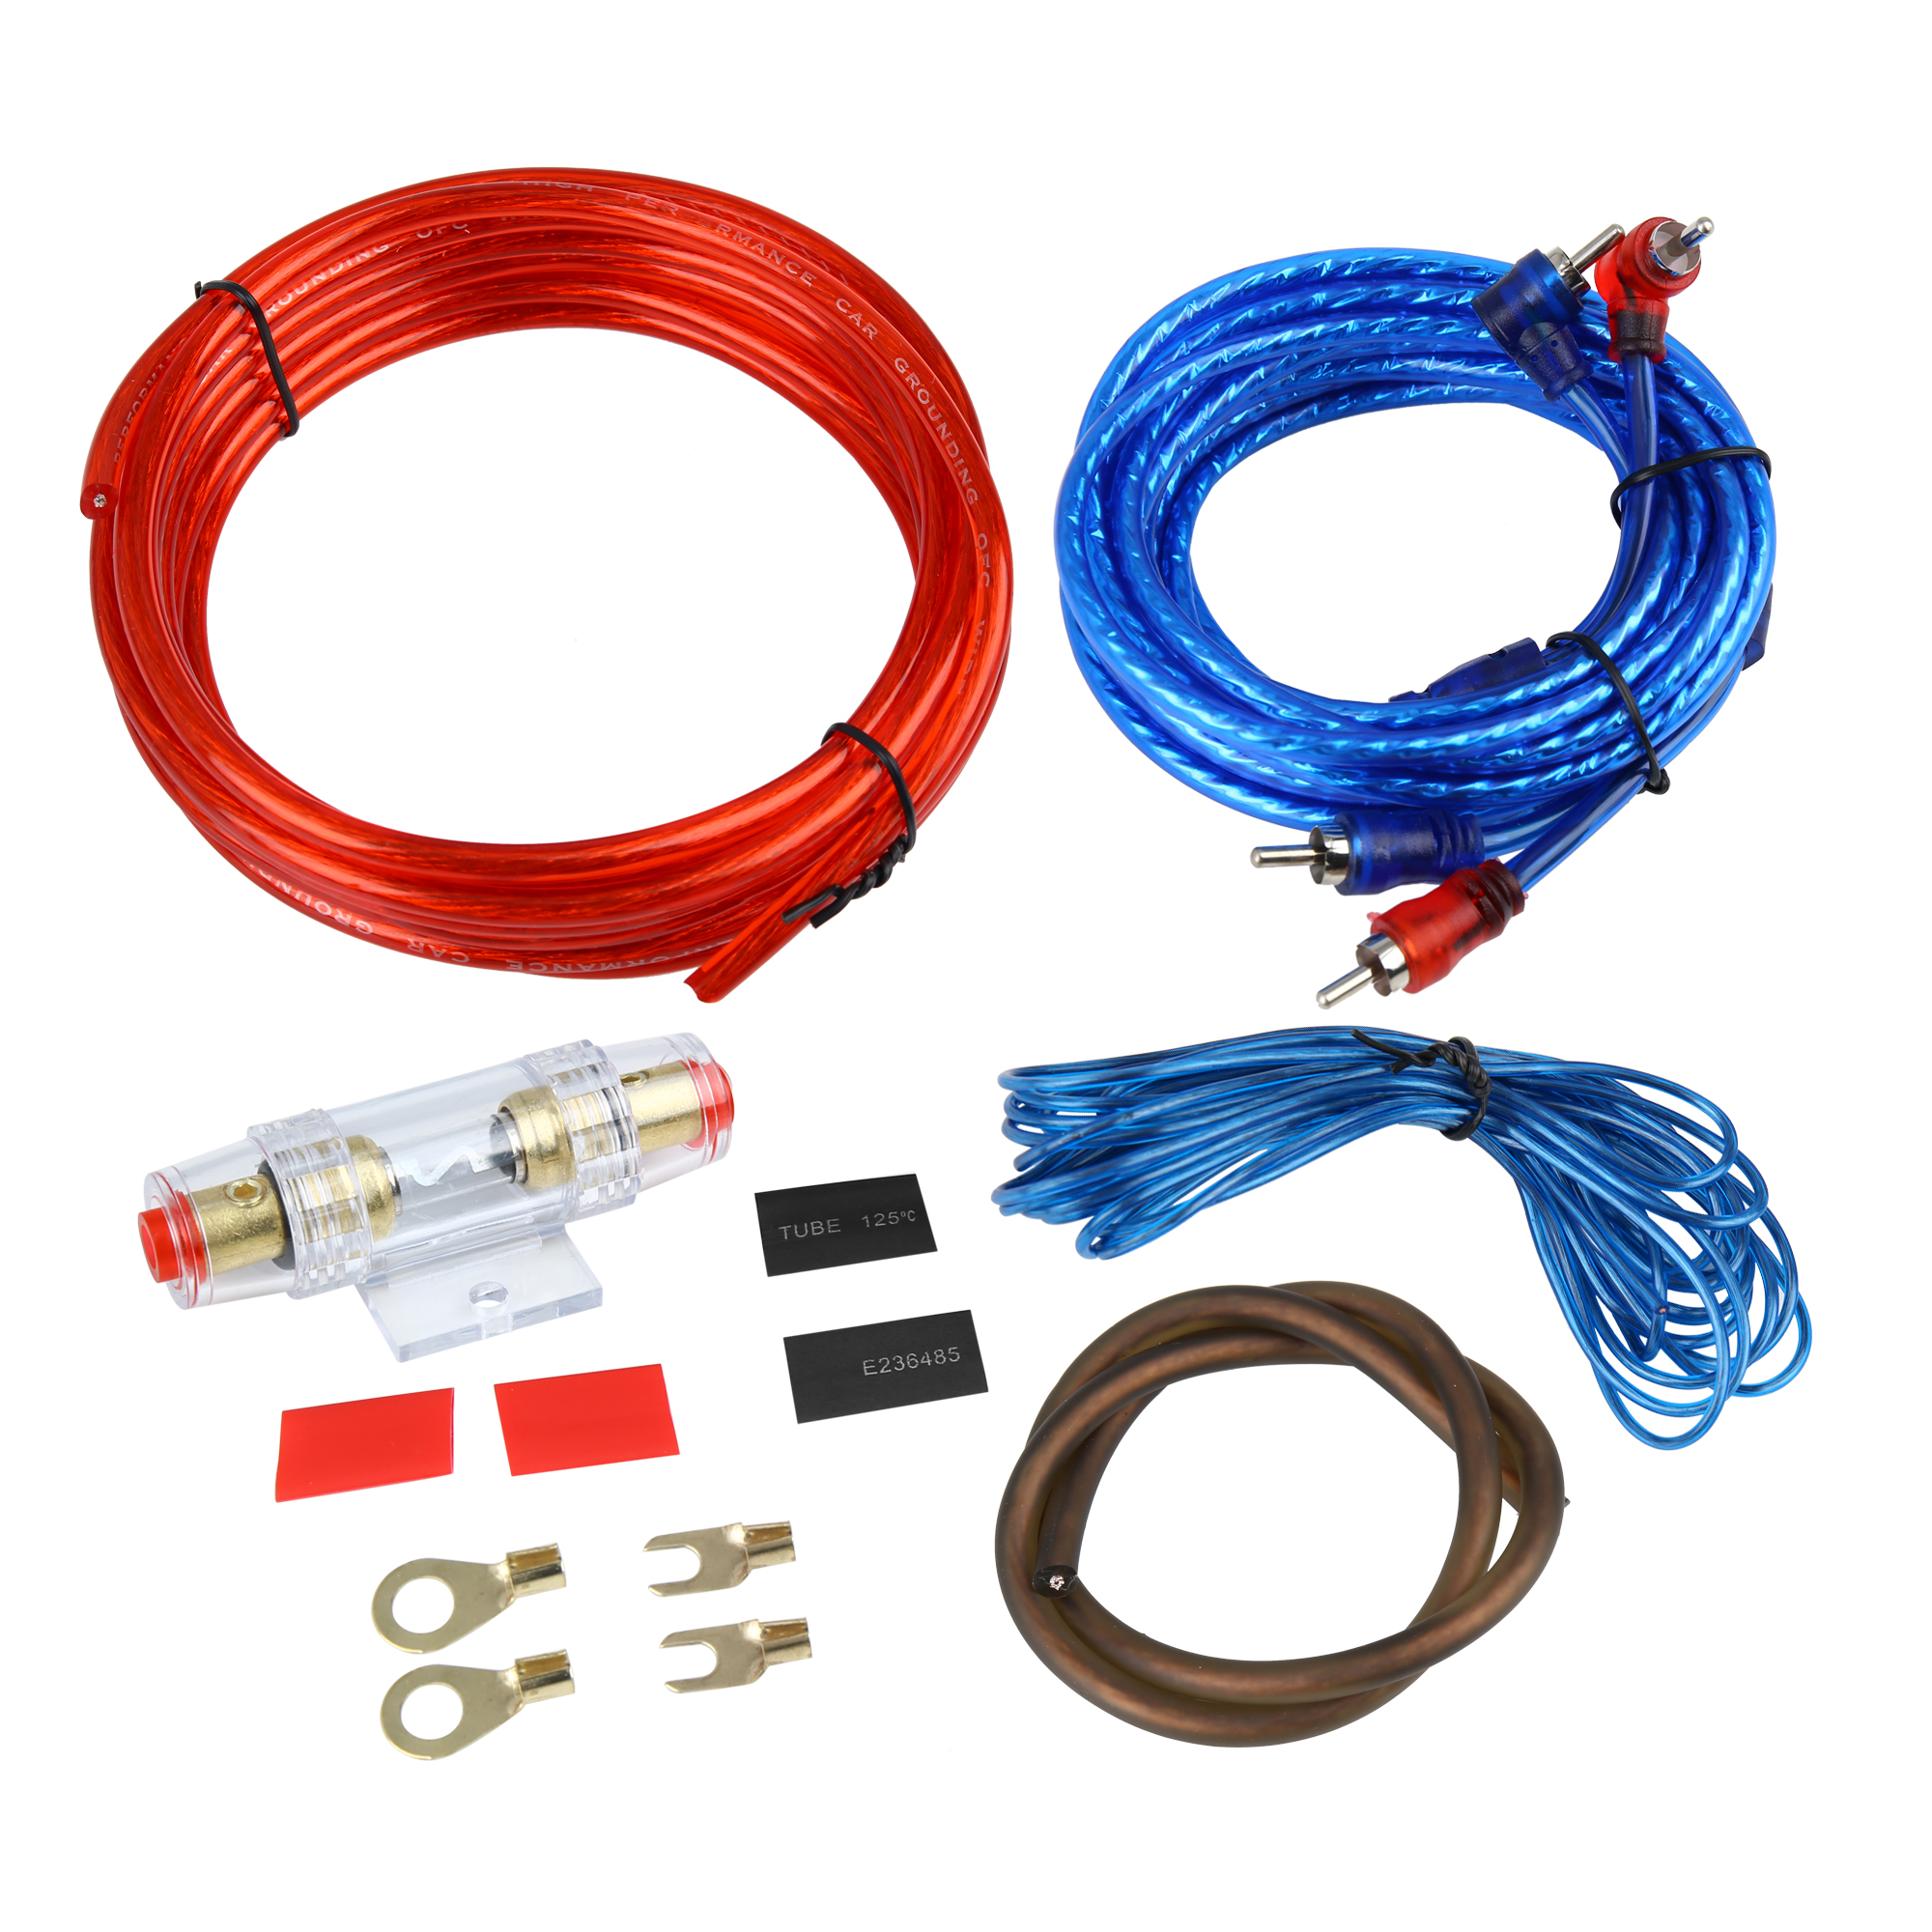 universal auto car amplifier wiring kit audio subwoofer rca power cable fuse set Auto Electrical Wiring Kits